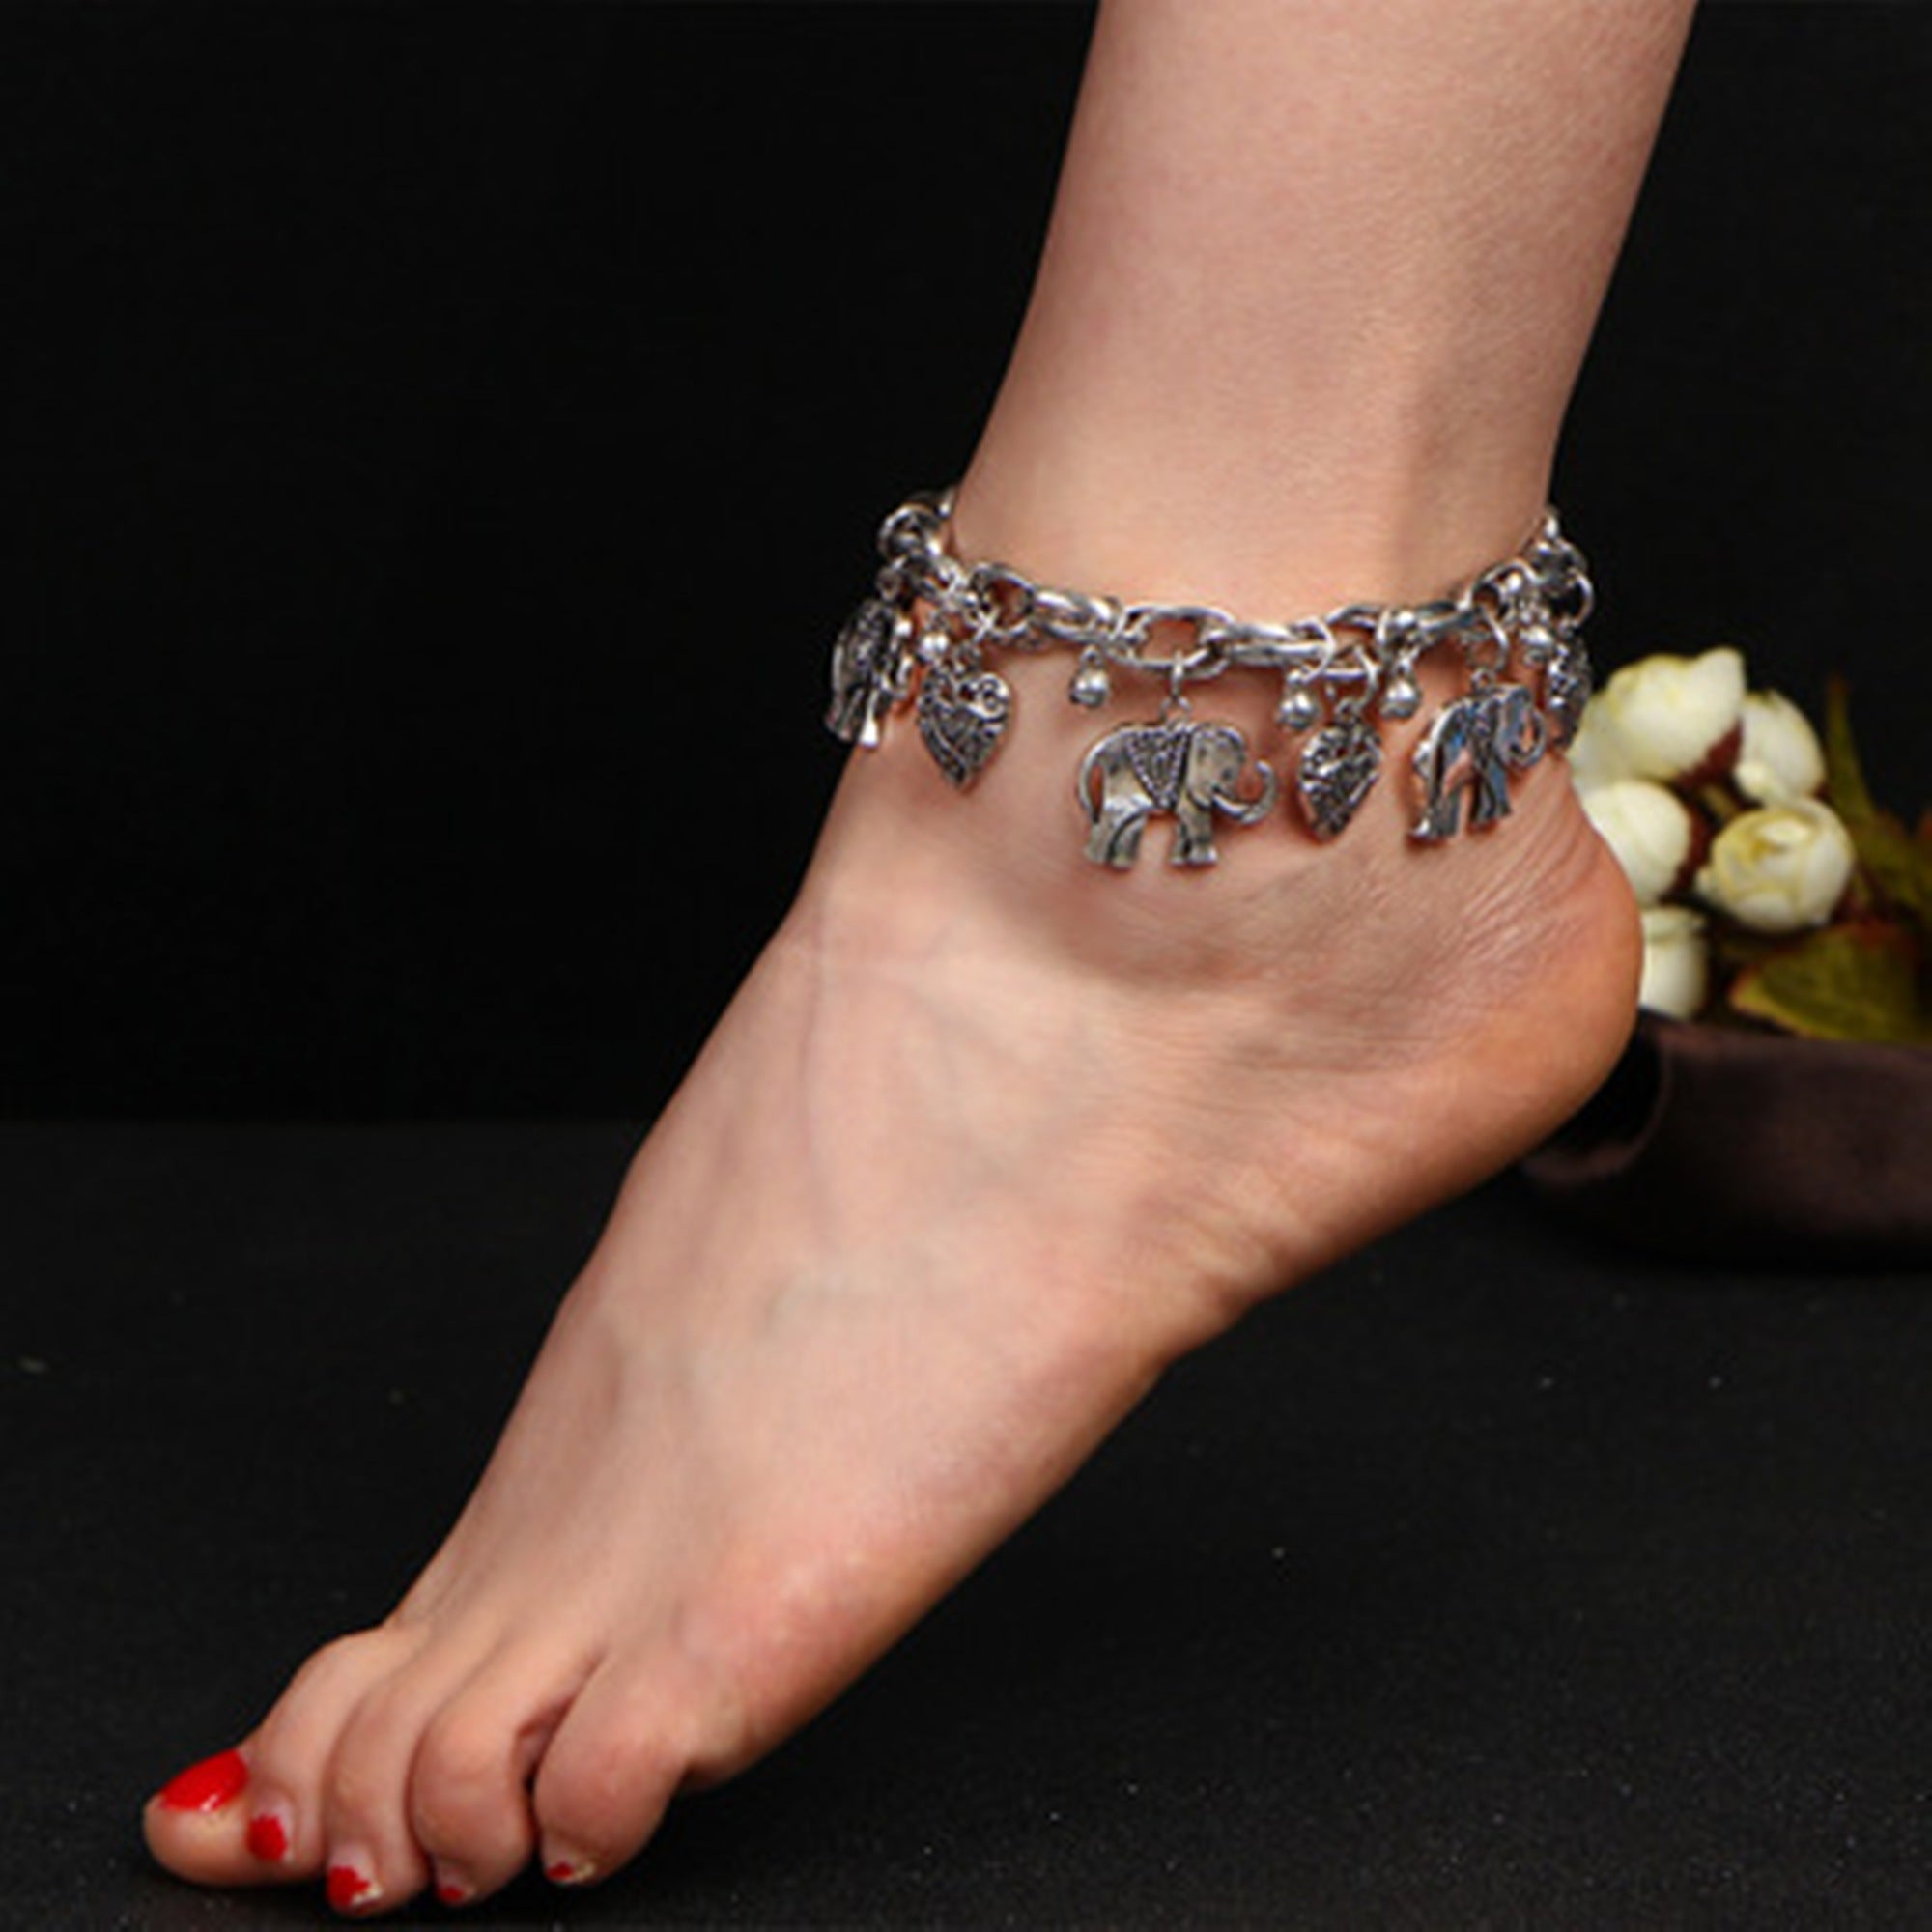 bracelets buy shell bracelet can anklets anklet ankle i enkelbandjes seashell pin where